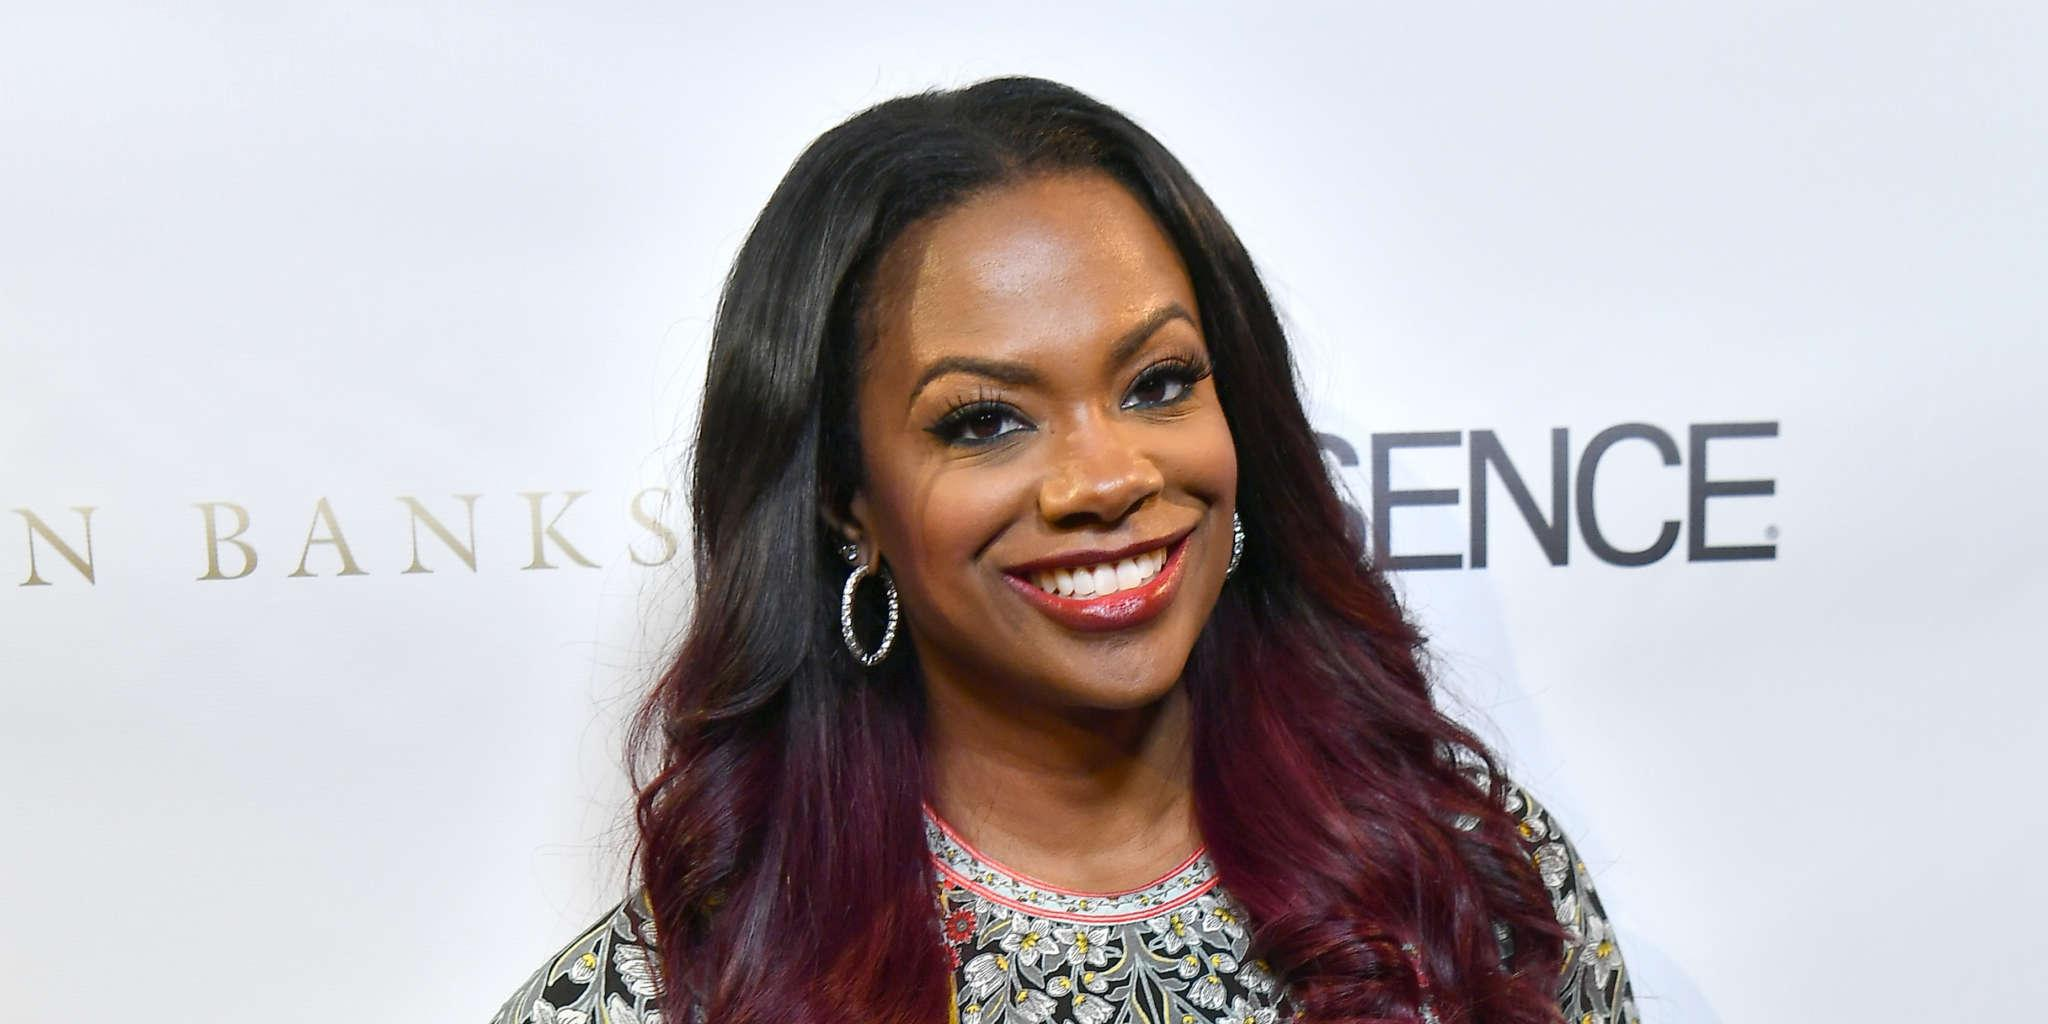 Kandi Burruss Surprises Fans With New Music Alert And An Amazing Collab!